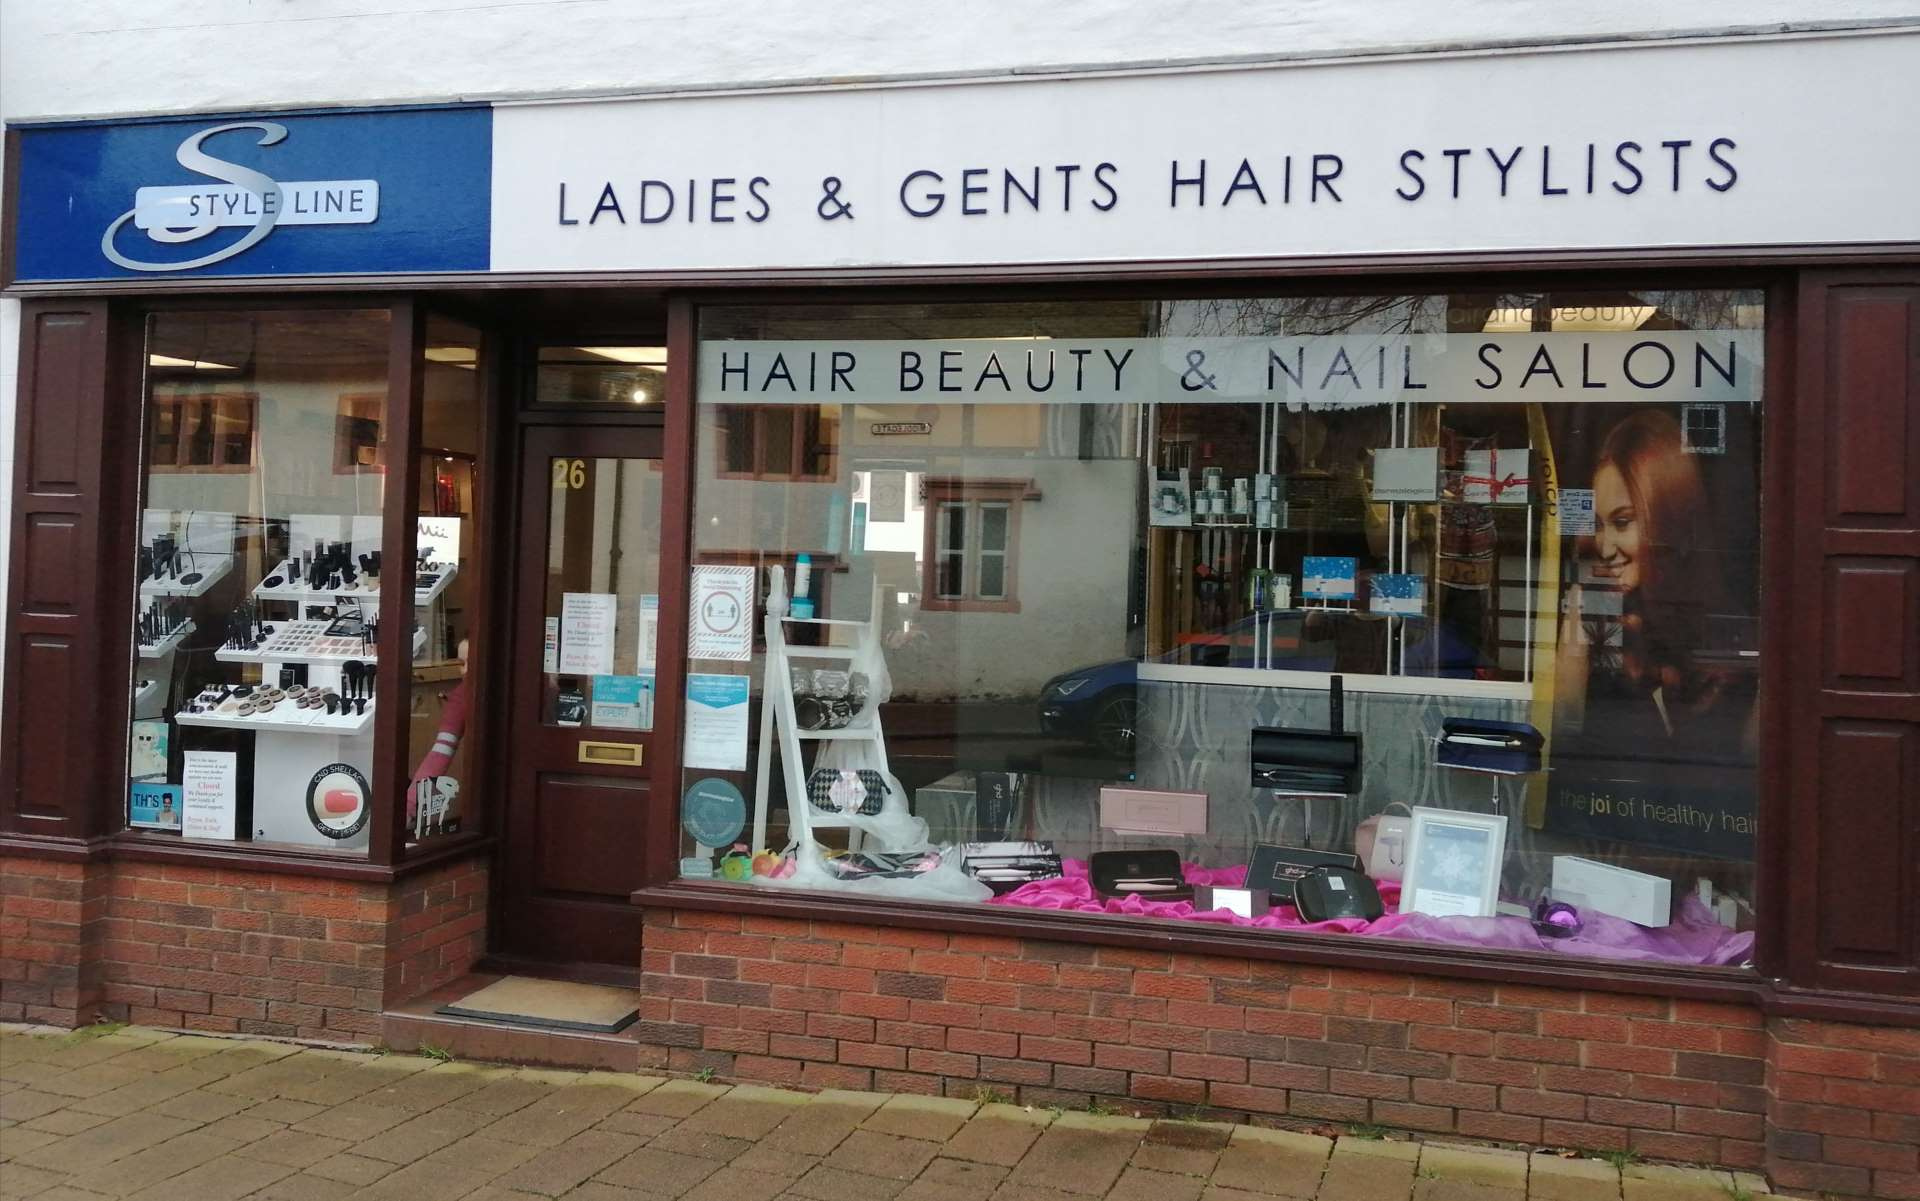 Style Line Hair Salon in Penrith, Cumbria